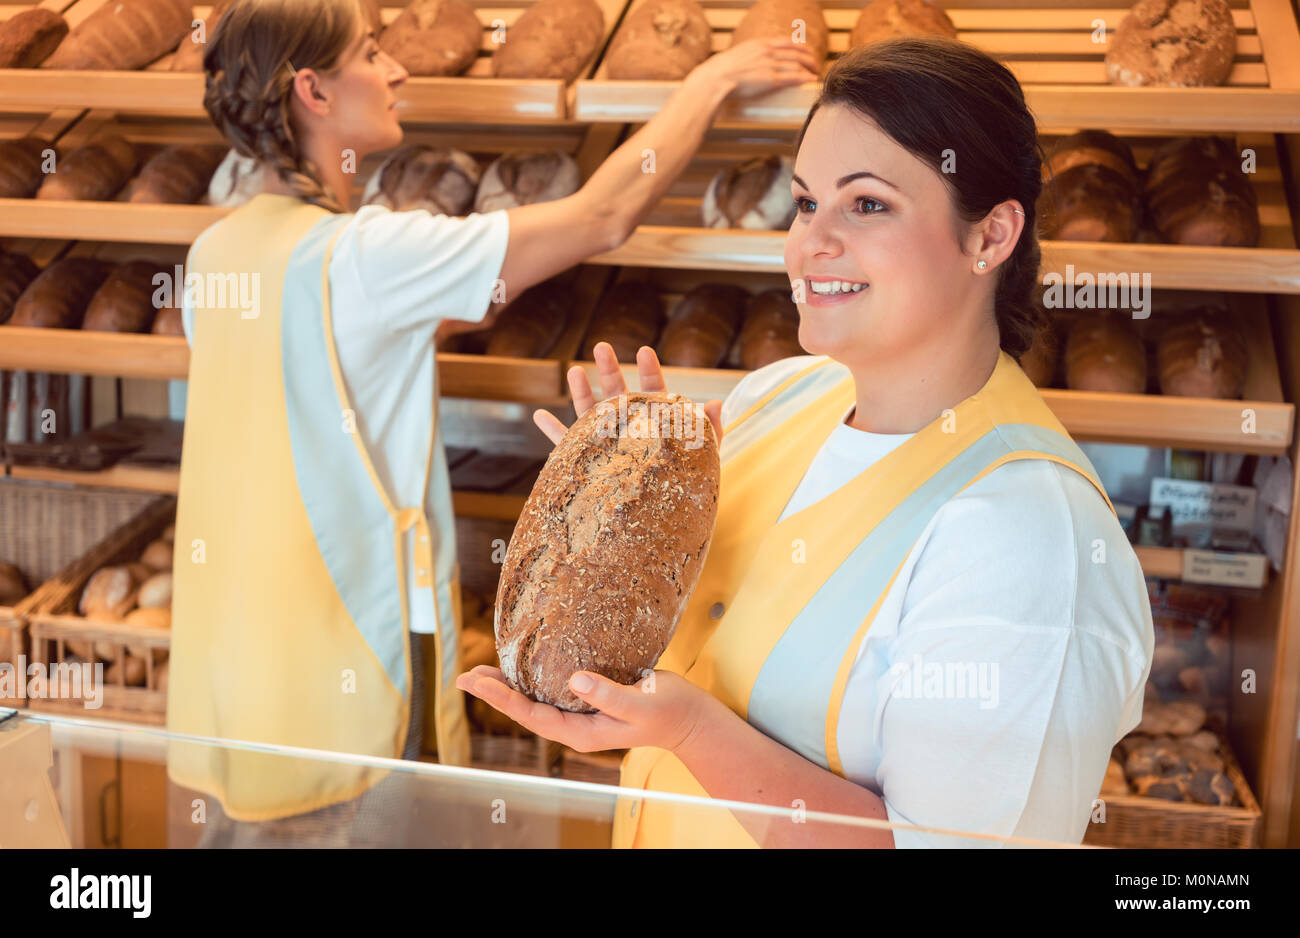 Two salesladies selling bread and other products in bakery shop - Stock Image